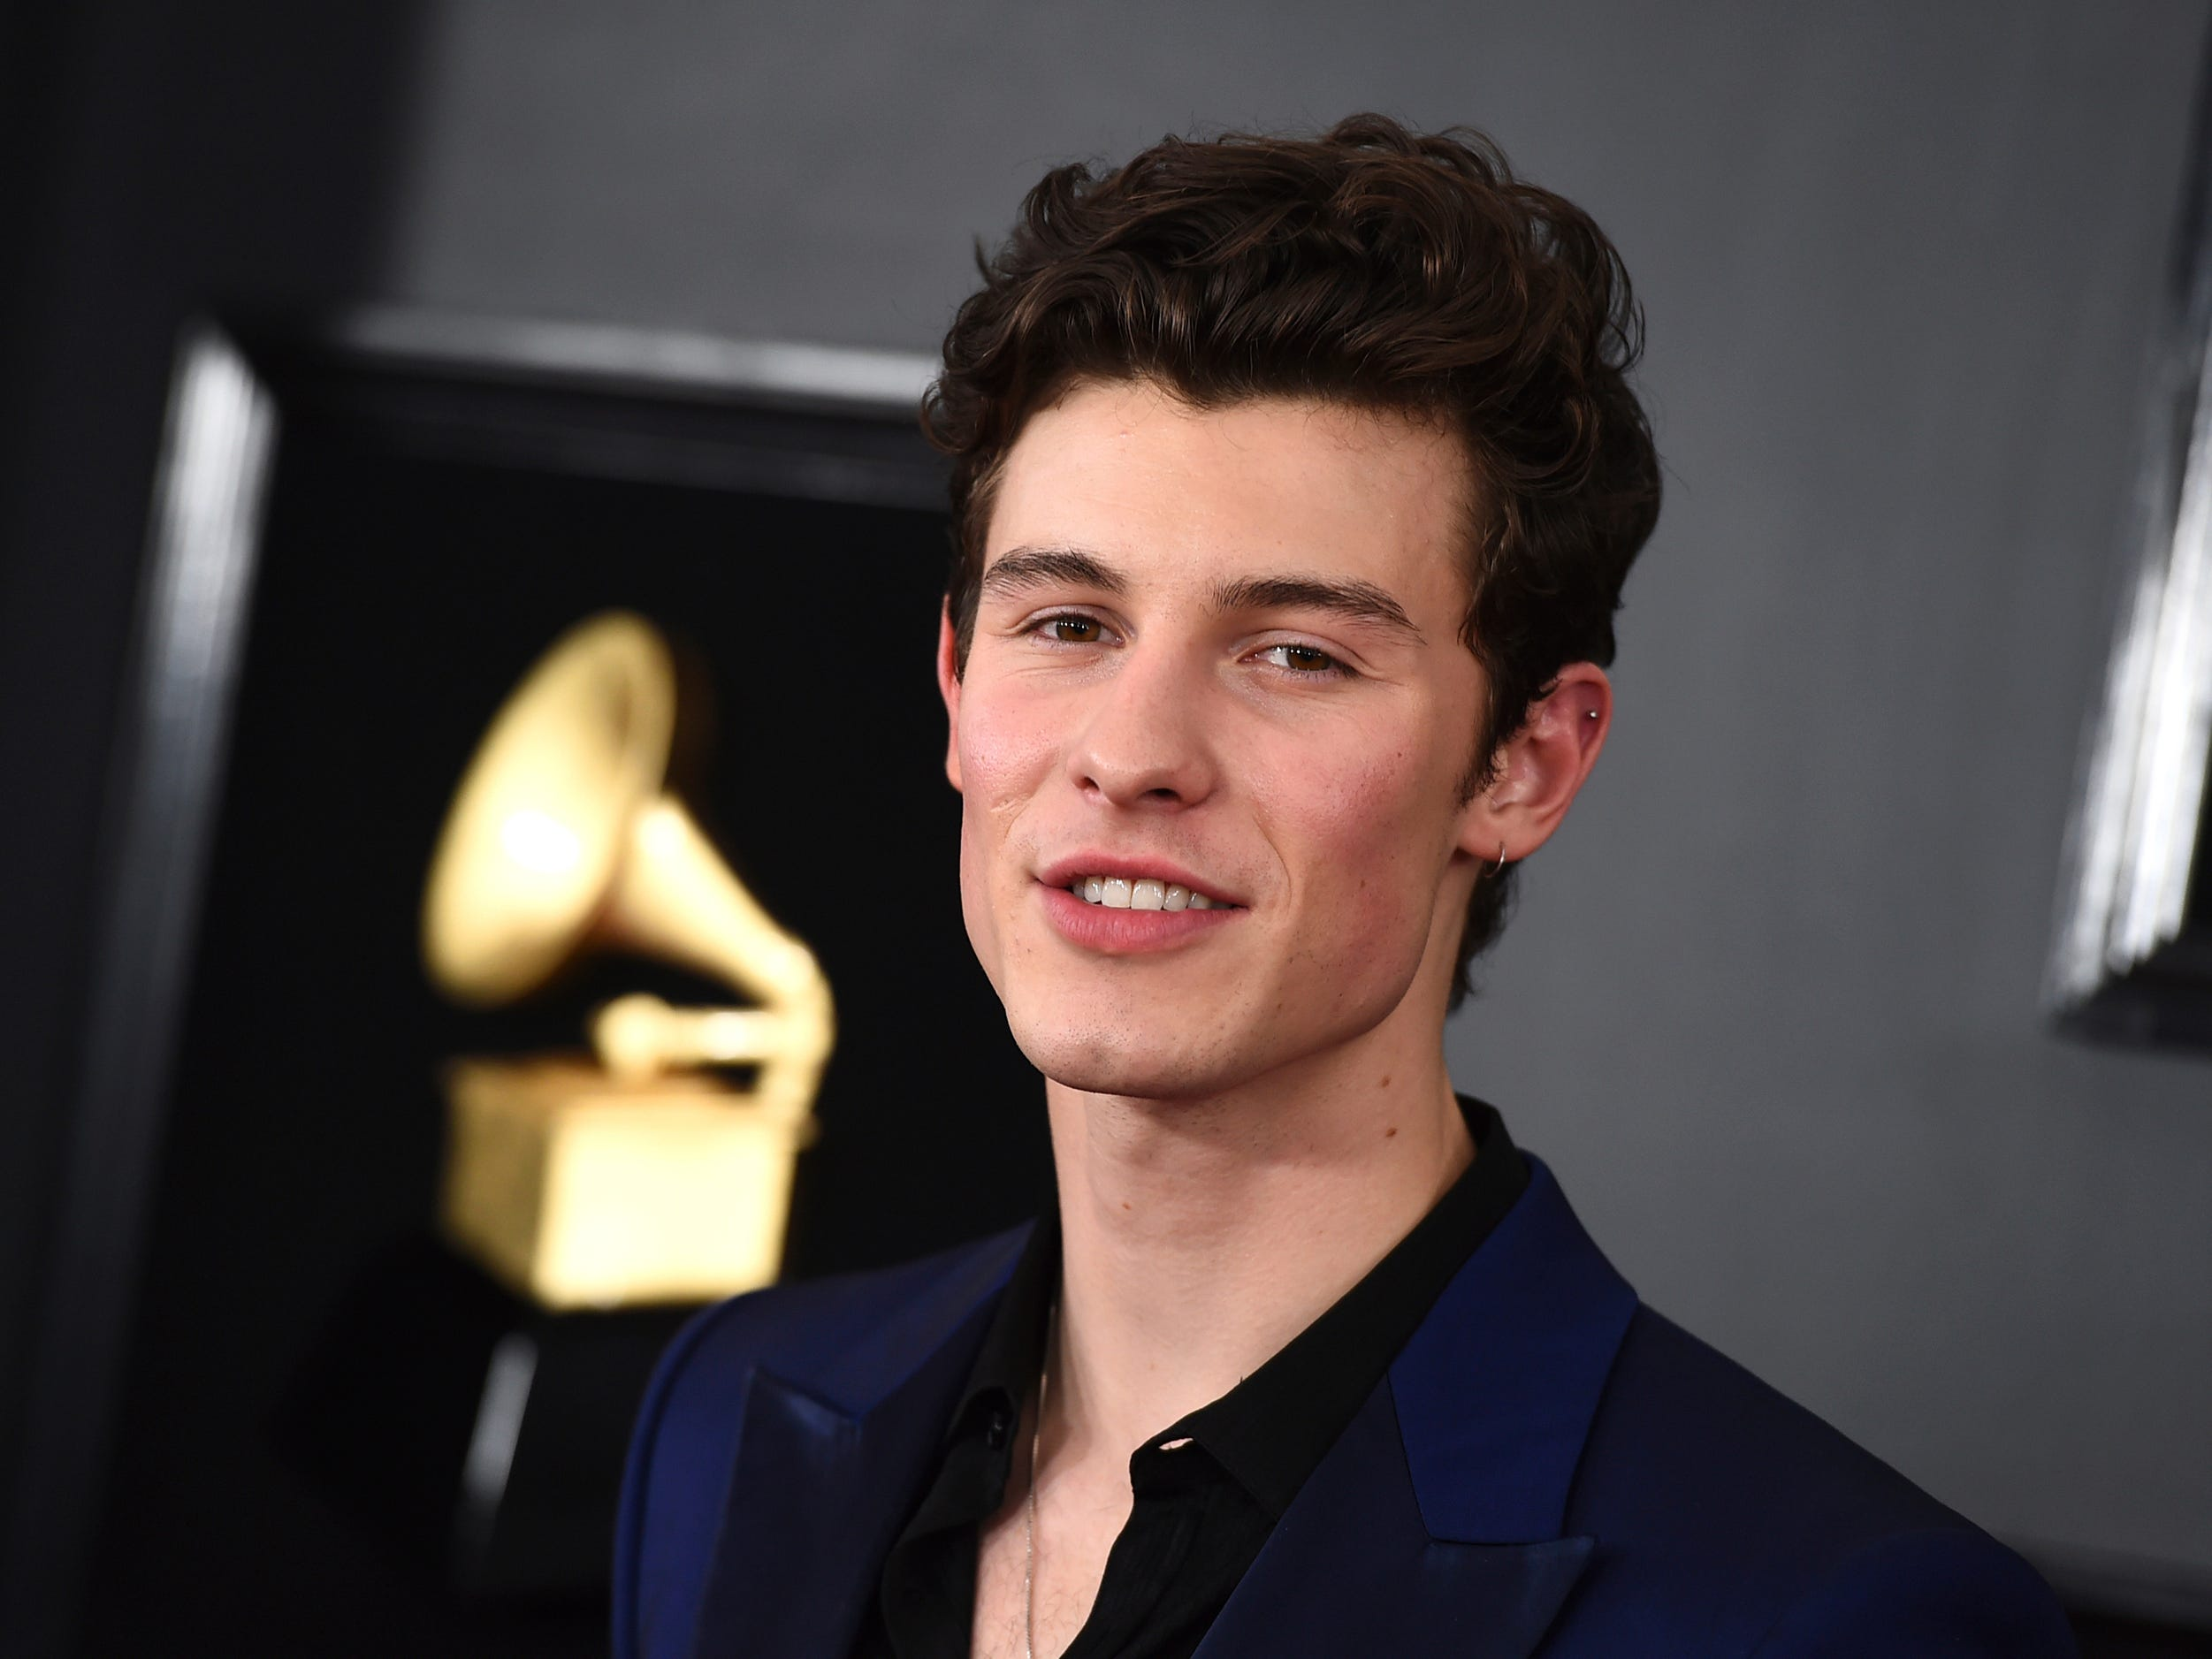 Shawn Mendes arrives at the 61st annual Grammy Awards at the Staples Center on Sunday, Feb. 10, 2019, in Los Angeles.